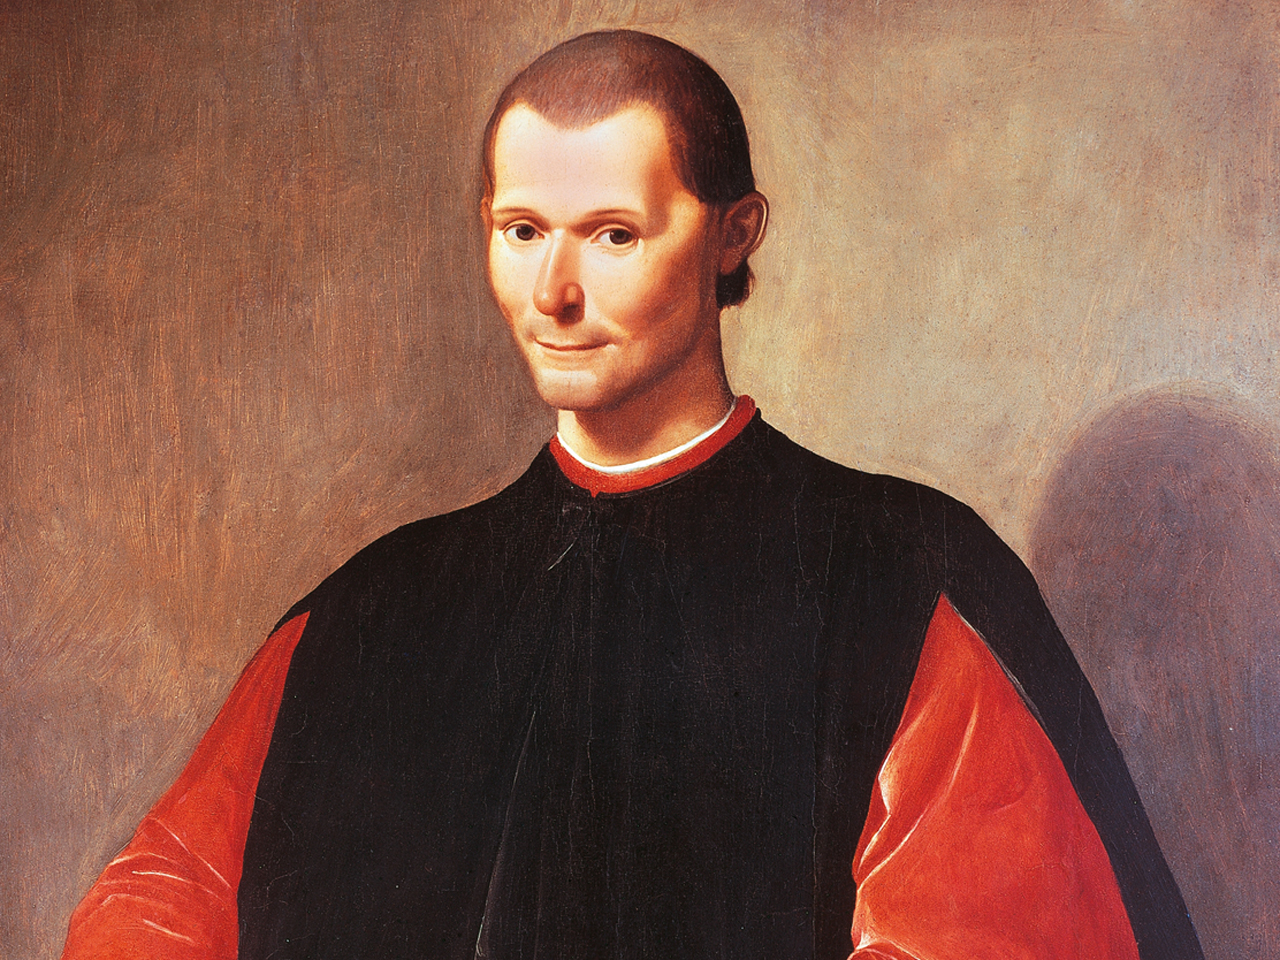 the modern machiavellian prince As the editor of the volume observes, machiavelli is 'taken to instantiate the  emergence of a distinctly modern understanding of the human.